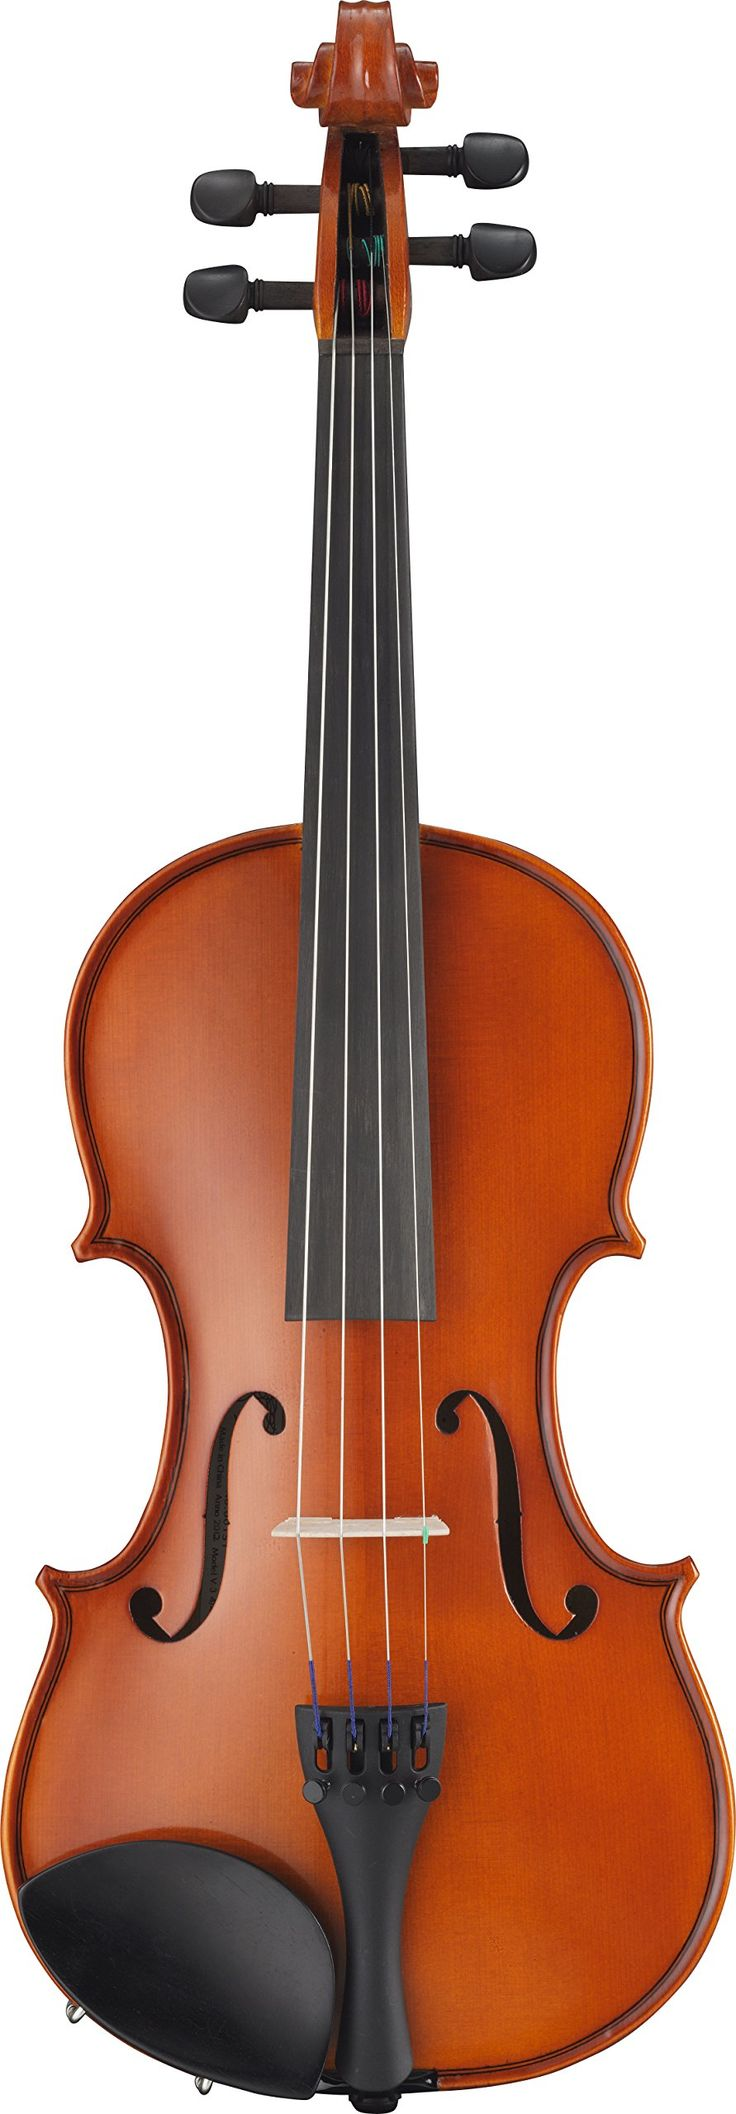 Yamaha V3 Series Student Violin Outfit 3/4 Size. Complete kitReliable constructionGreat sound and playabilitySolid reputation and support.